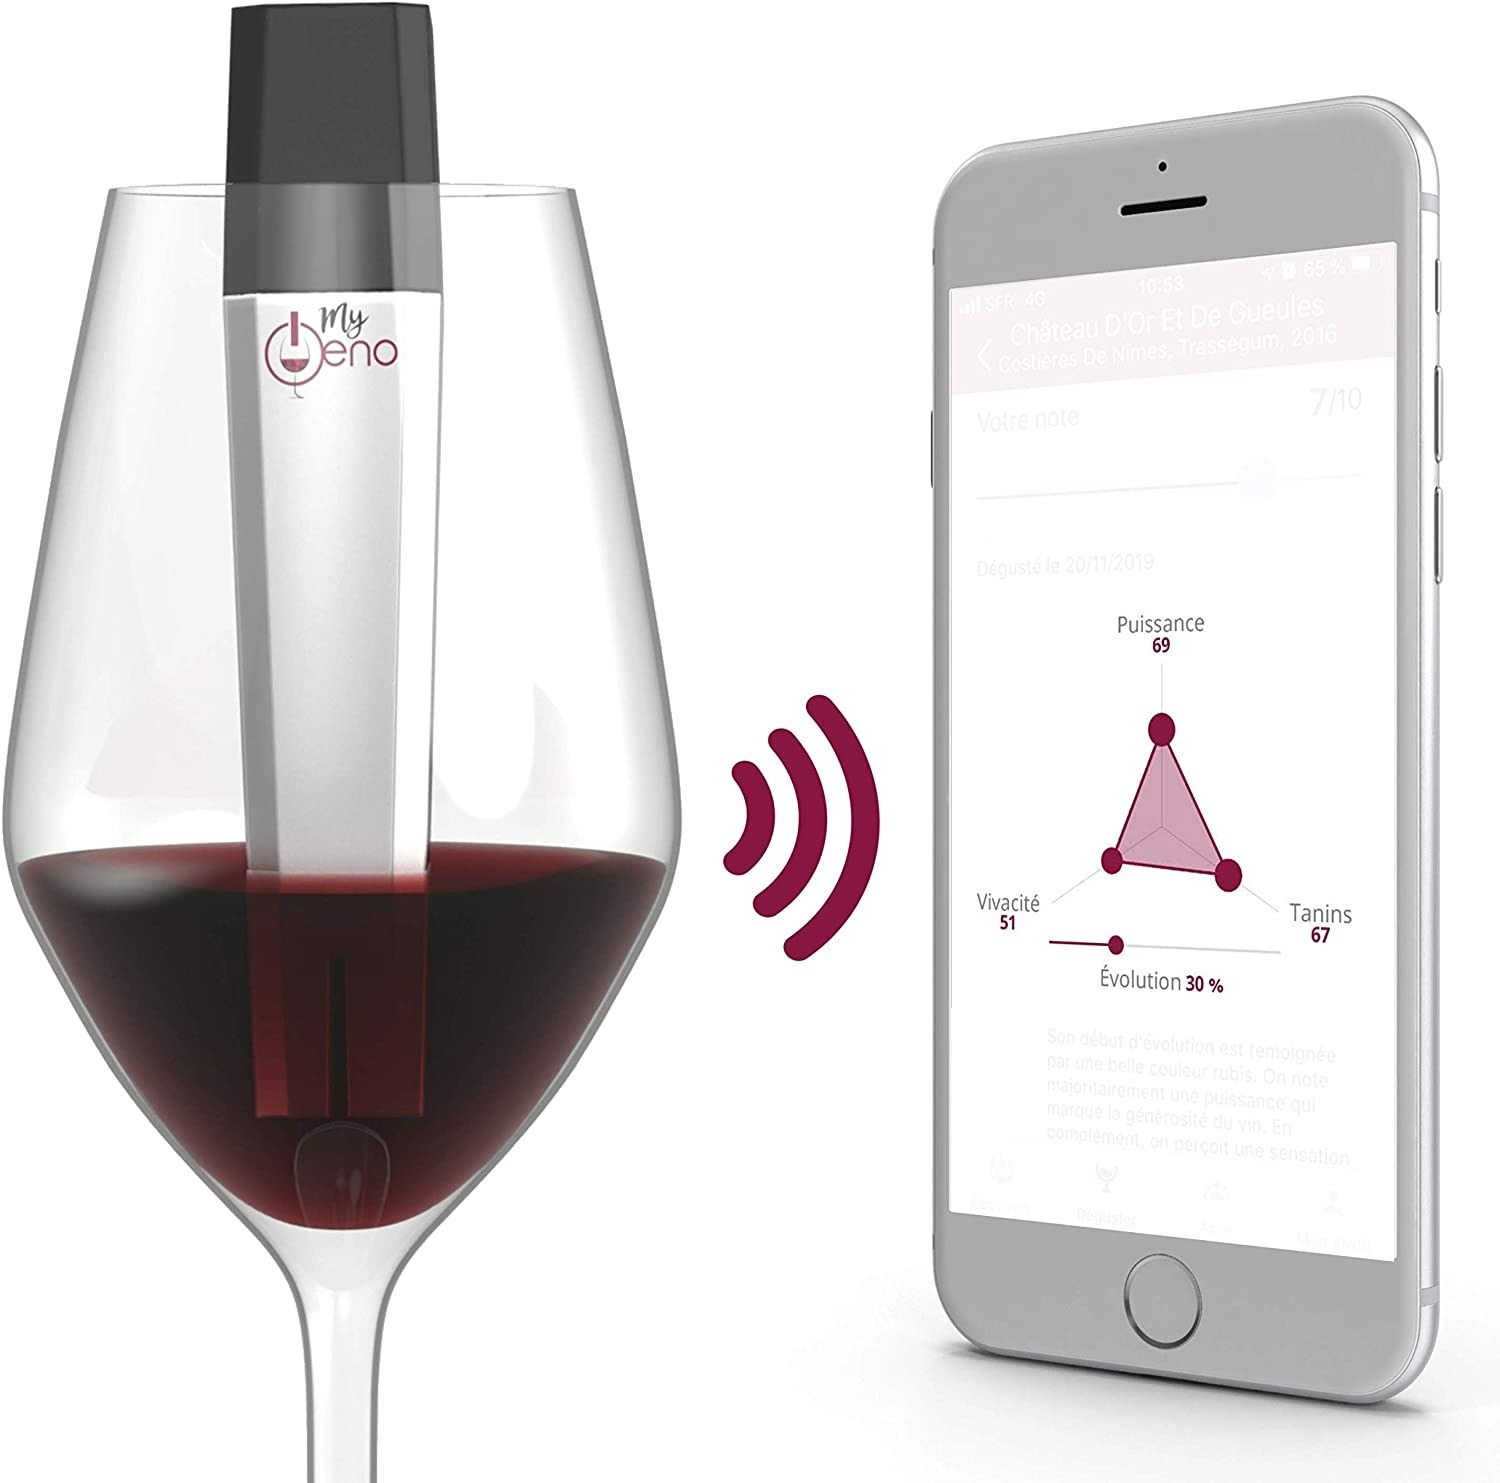 A glass of wine with a scanner in it sending information to a smartphone